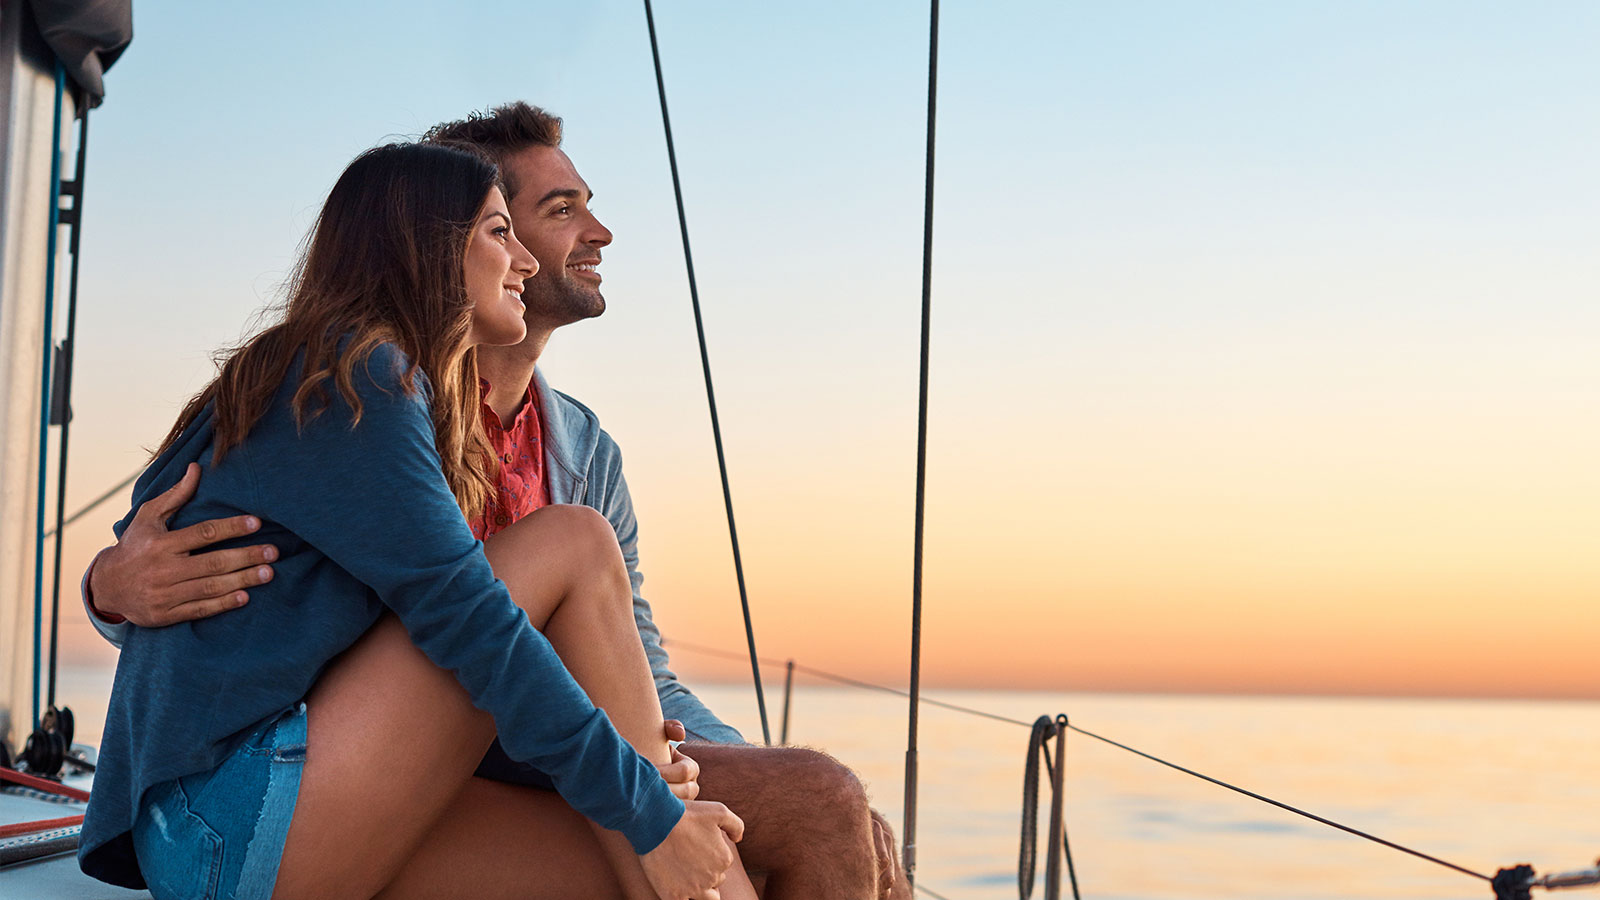 Woman and man embraced watching sunset